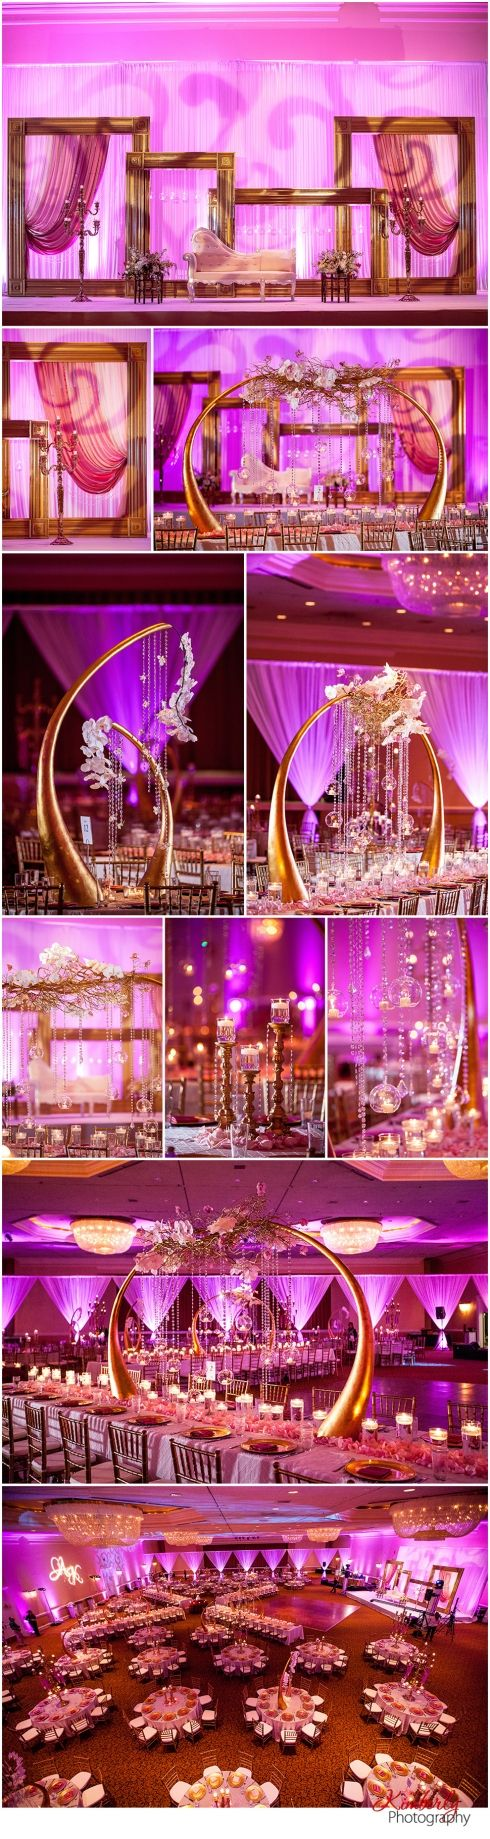 Indian wedding decor, Florida Indian Wedding Decor